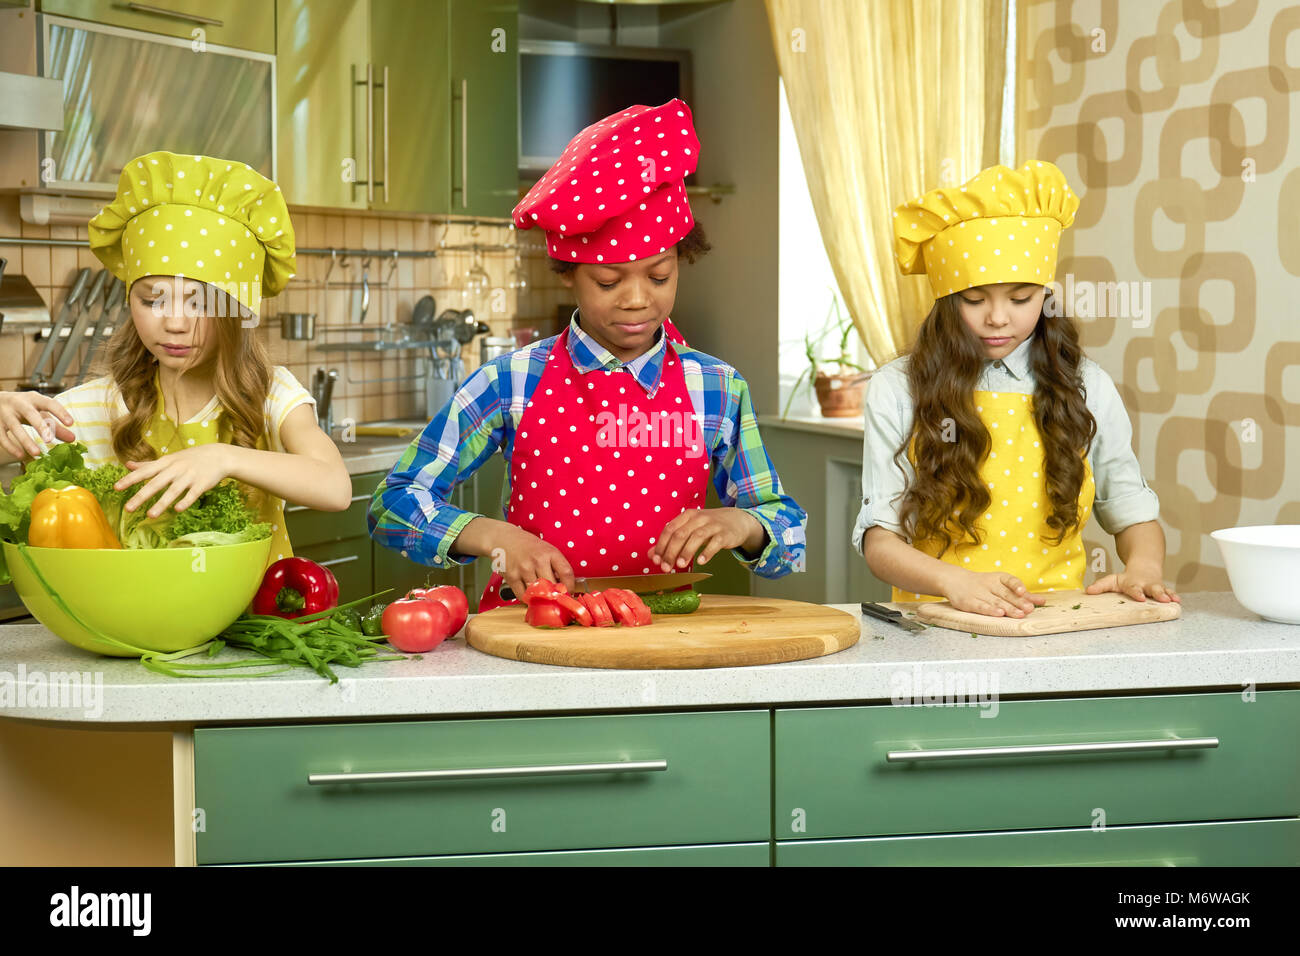 Children cooking in the kitchen. - Stock Image